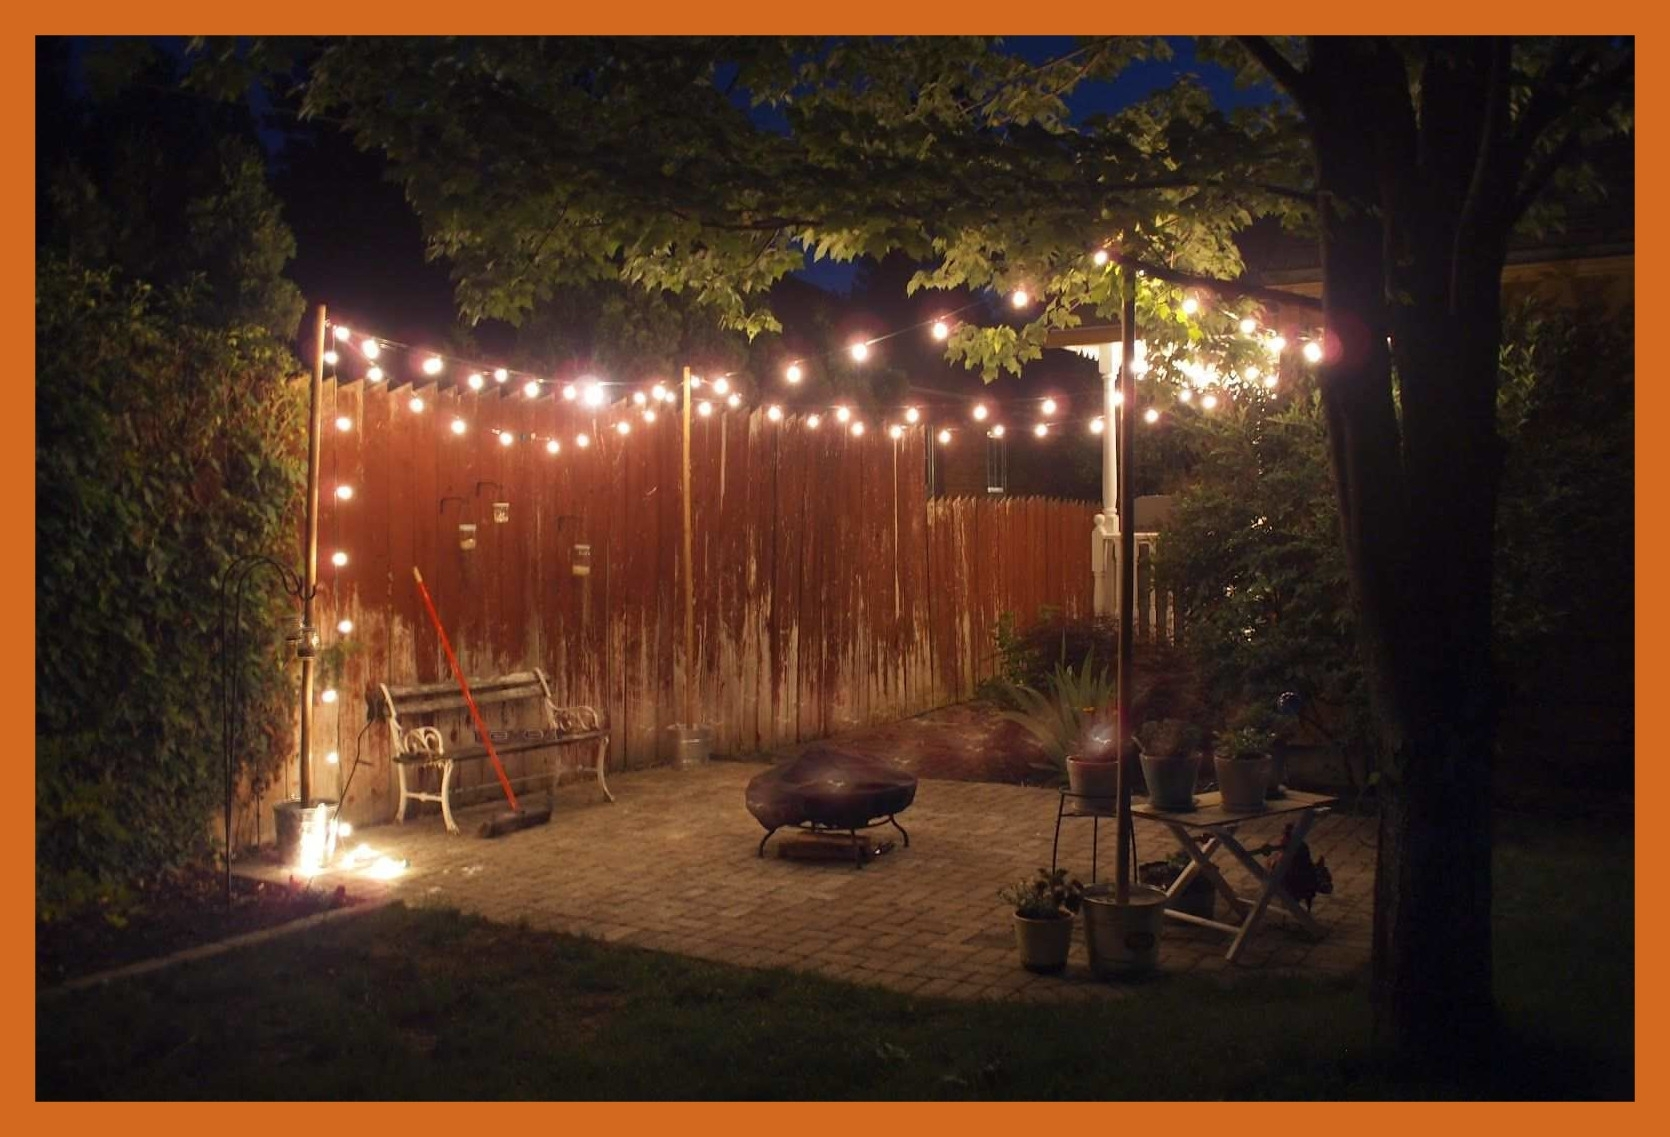 Astonishing How To Hang Outdoor String Lights On Stucco Best Of Pics For Hanging Outdoor Lights On Stucco (#2 of 15)